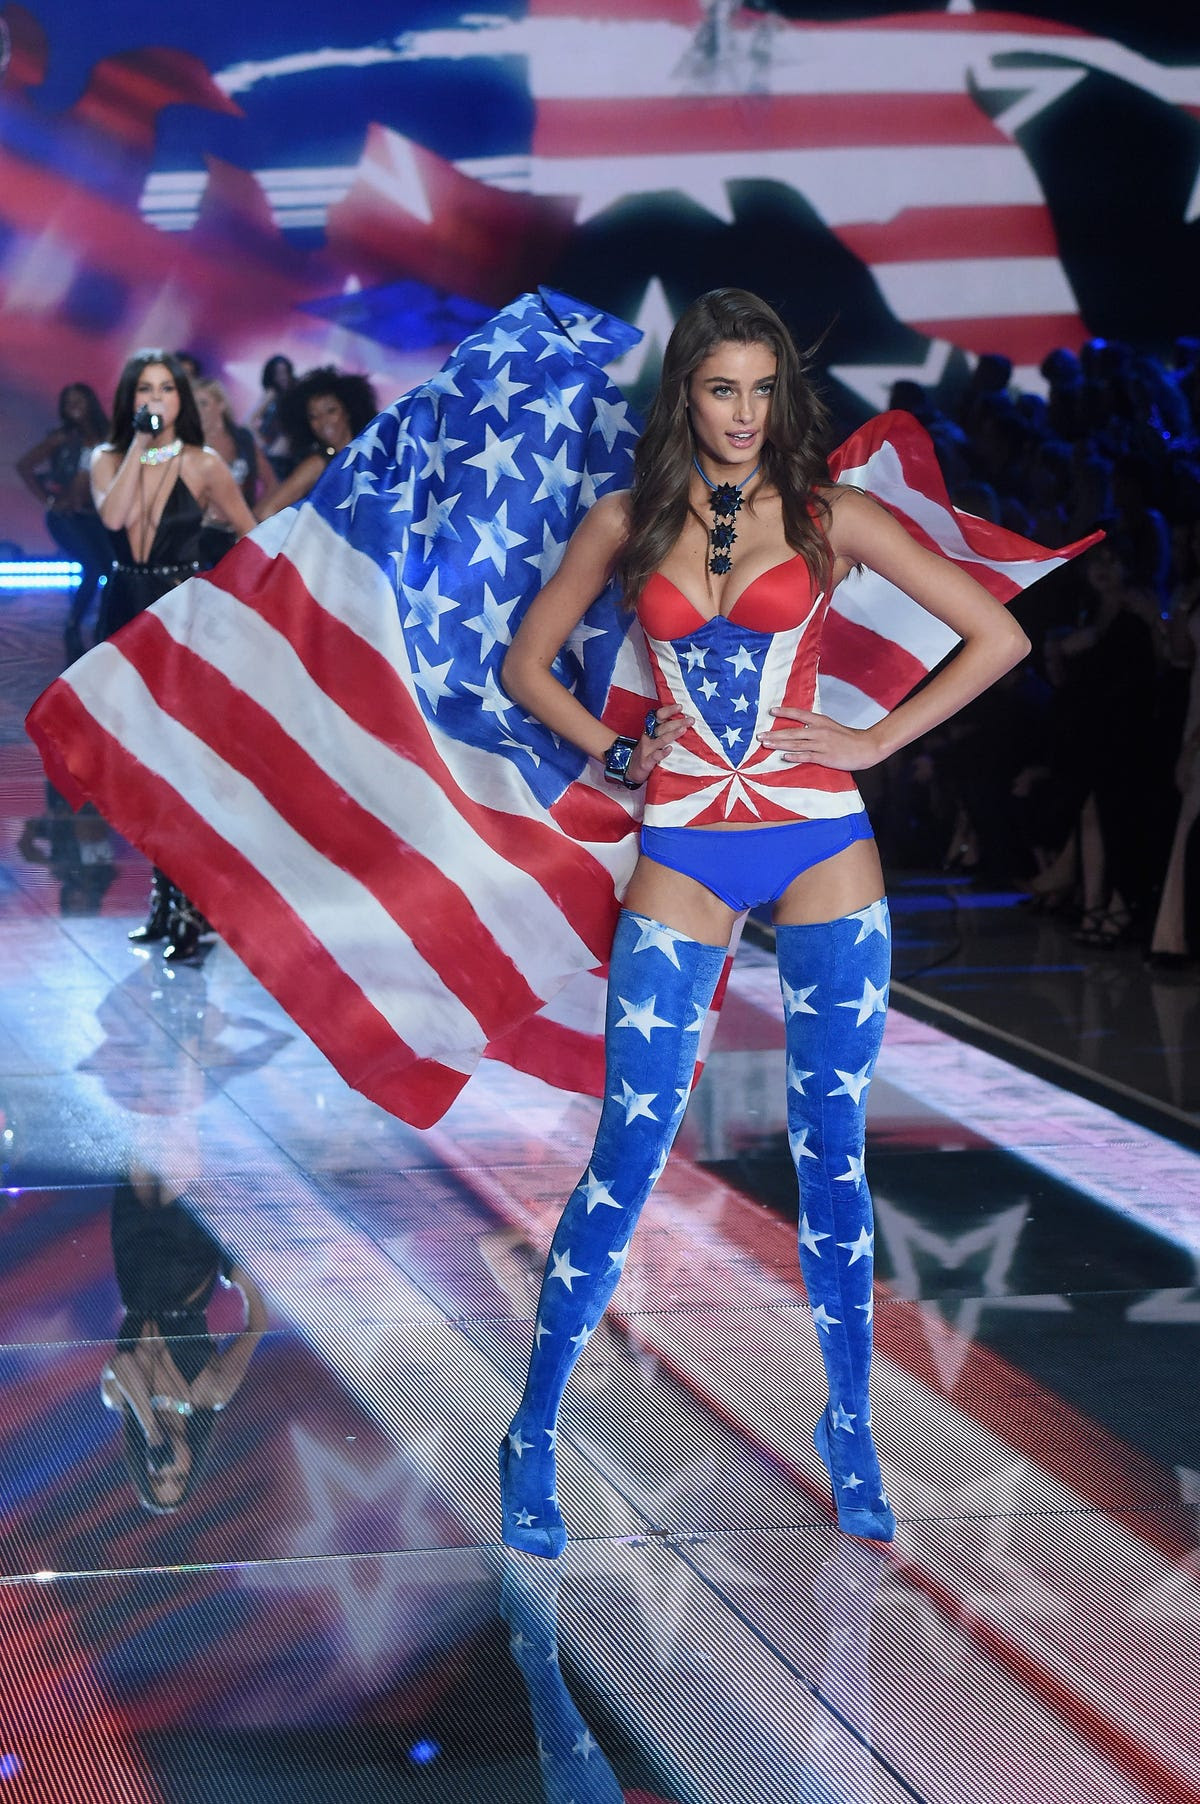 Victoria's Secret youngest model, Taylor Hill (she's just 19!), showed off her American spirit.